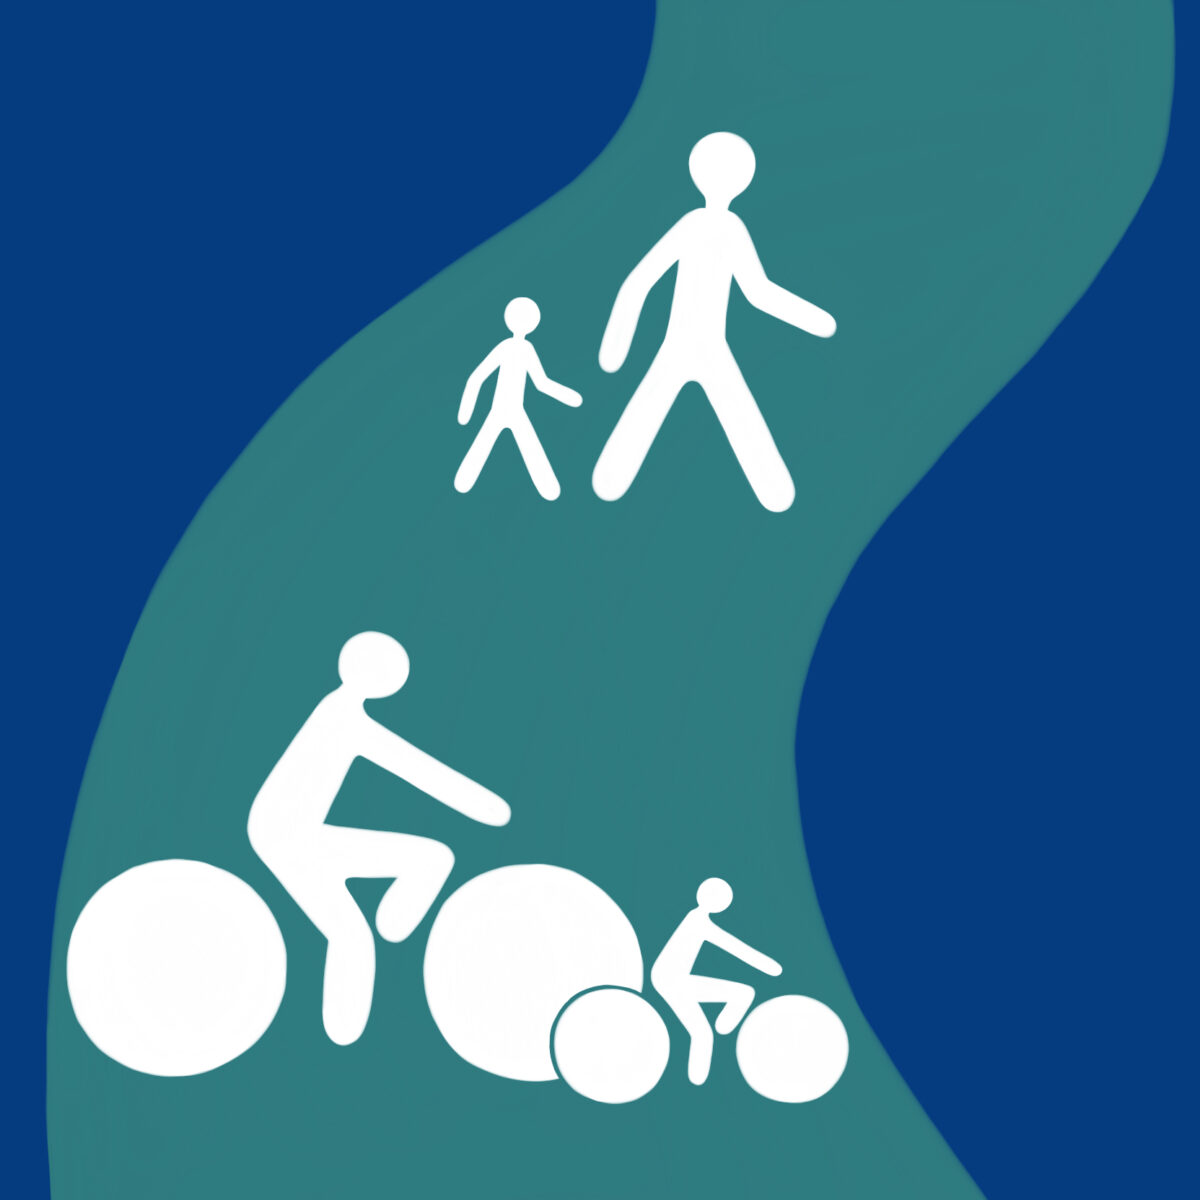 Ipswich Cycling and Walking Charter logo showing a family group walking and cycling on a path.